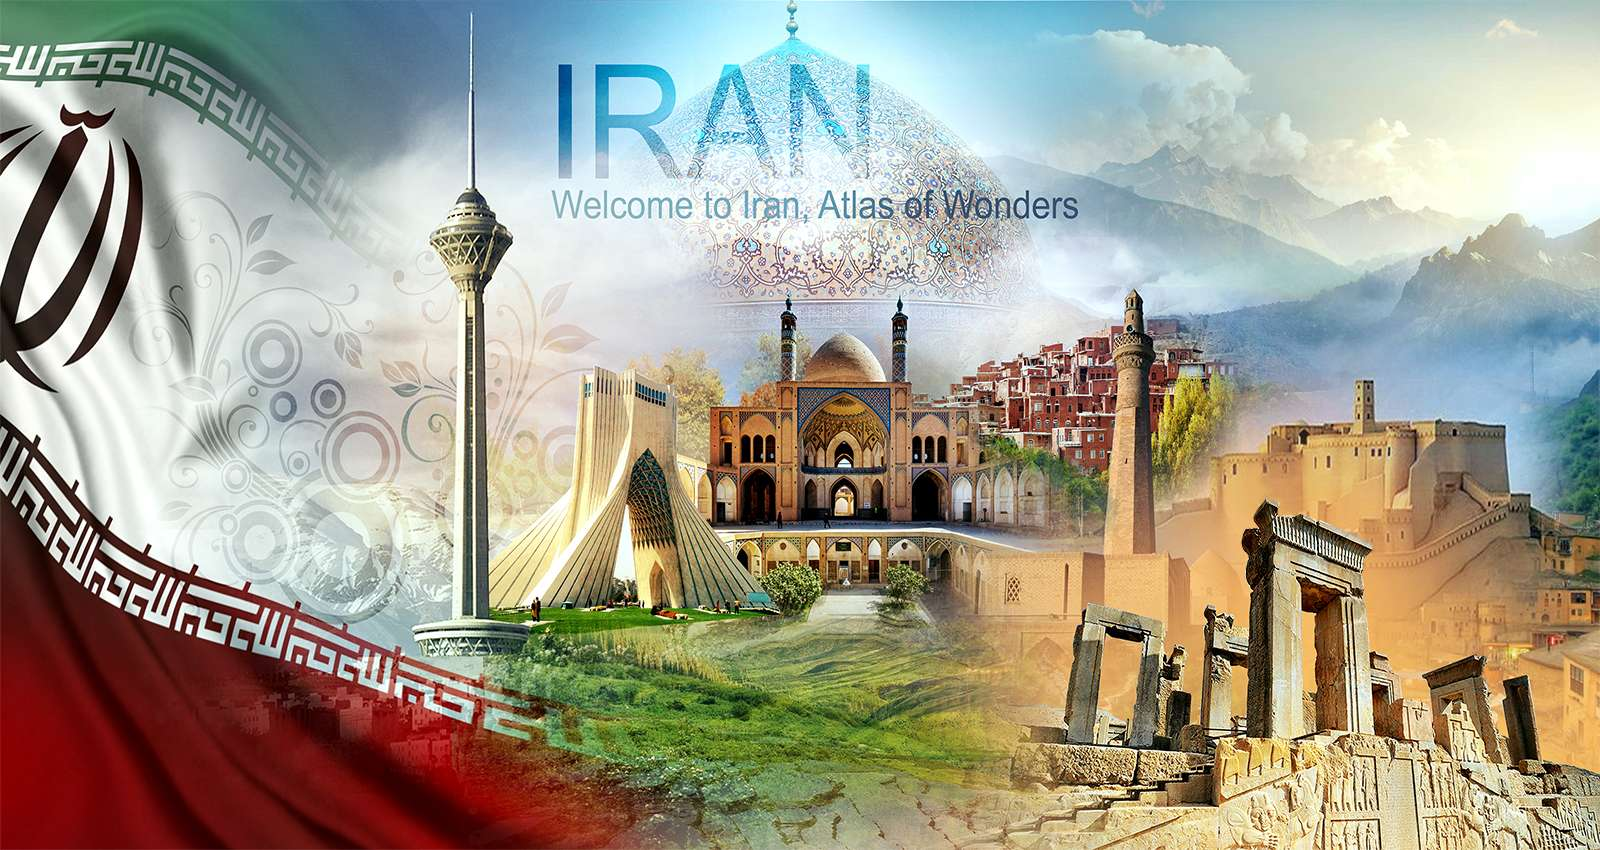 When is the best time to visit Iran